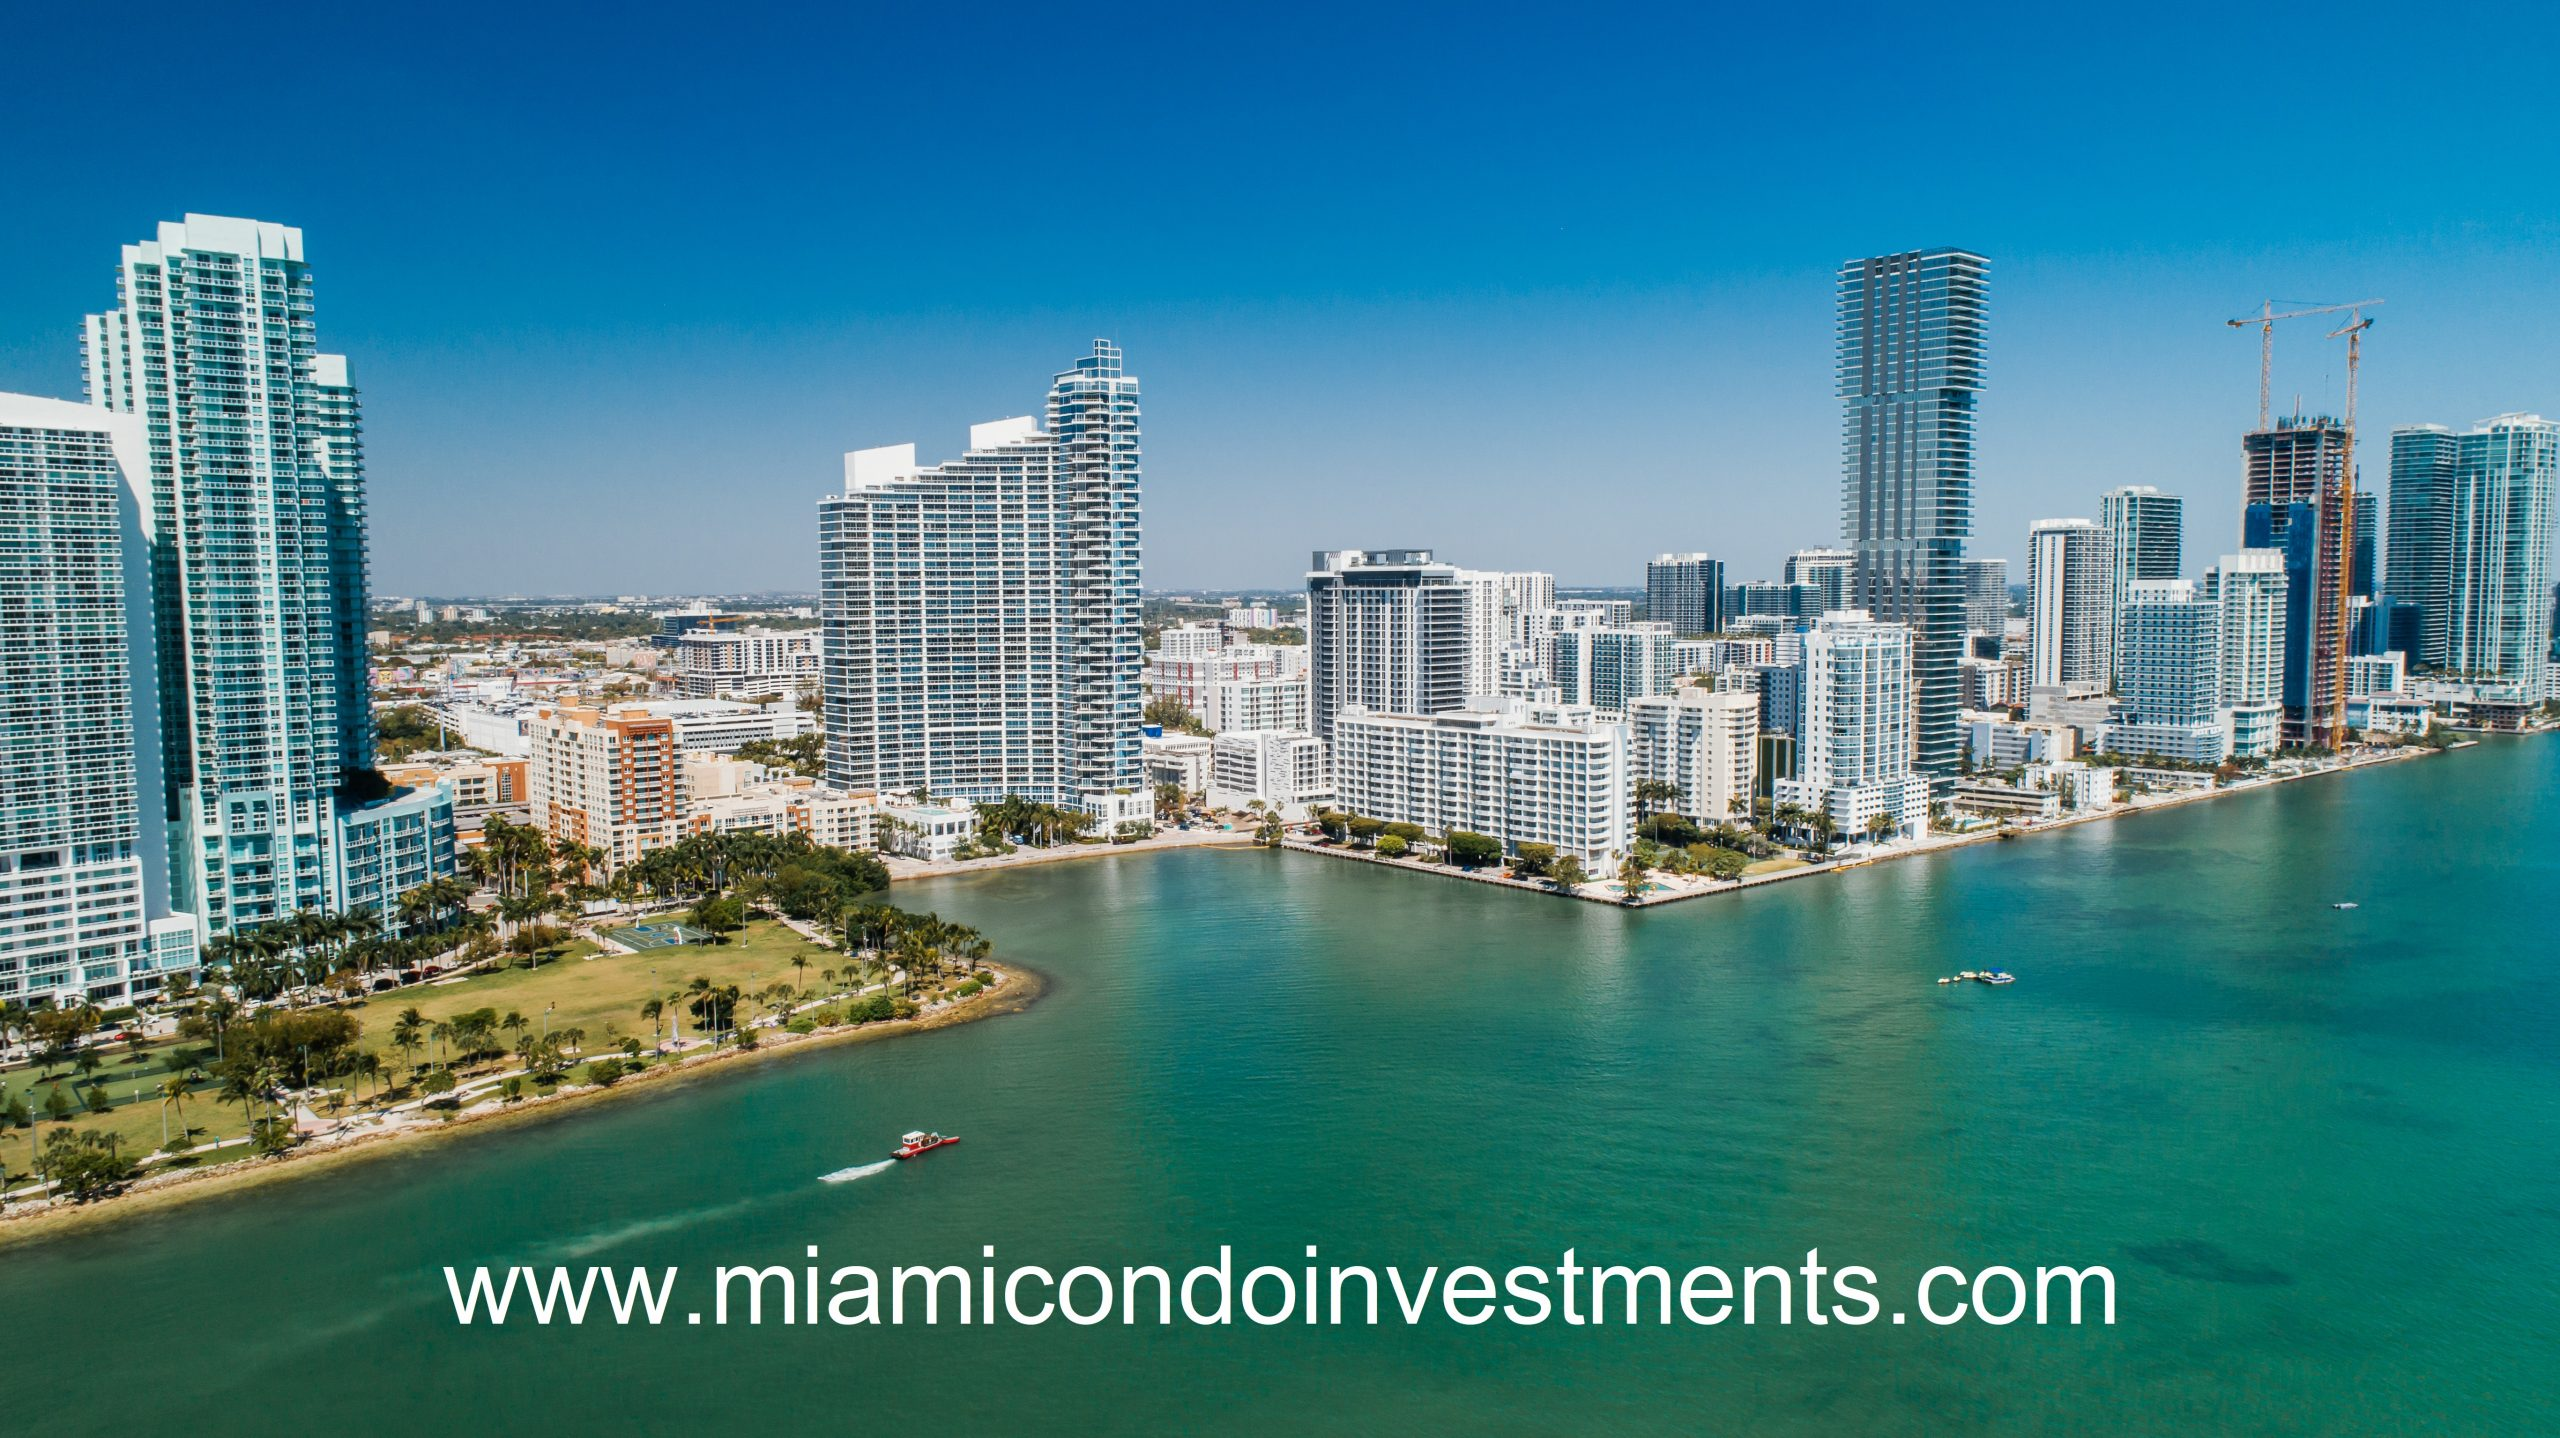 Modera Biscayne Bay Tower View from Biscayne Bay